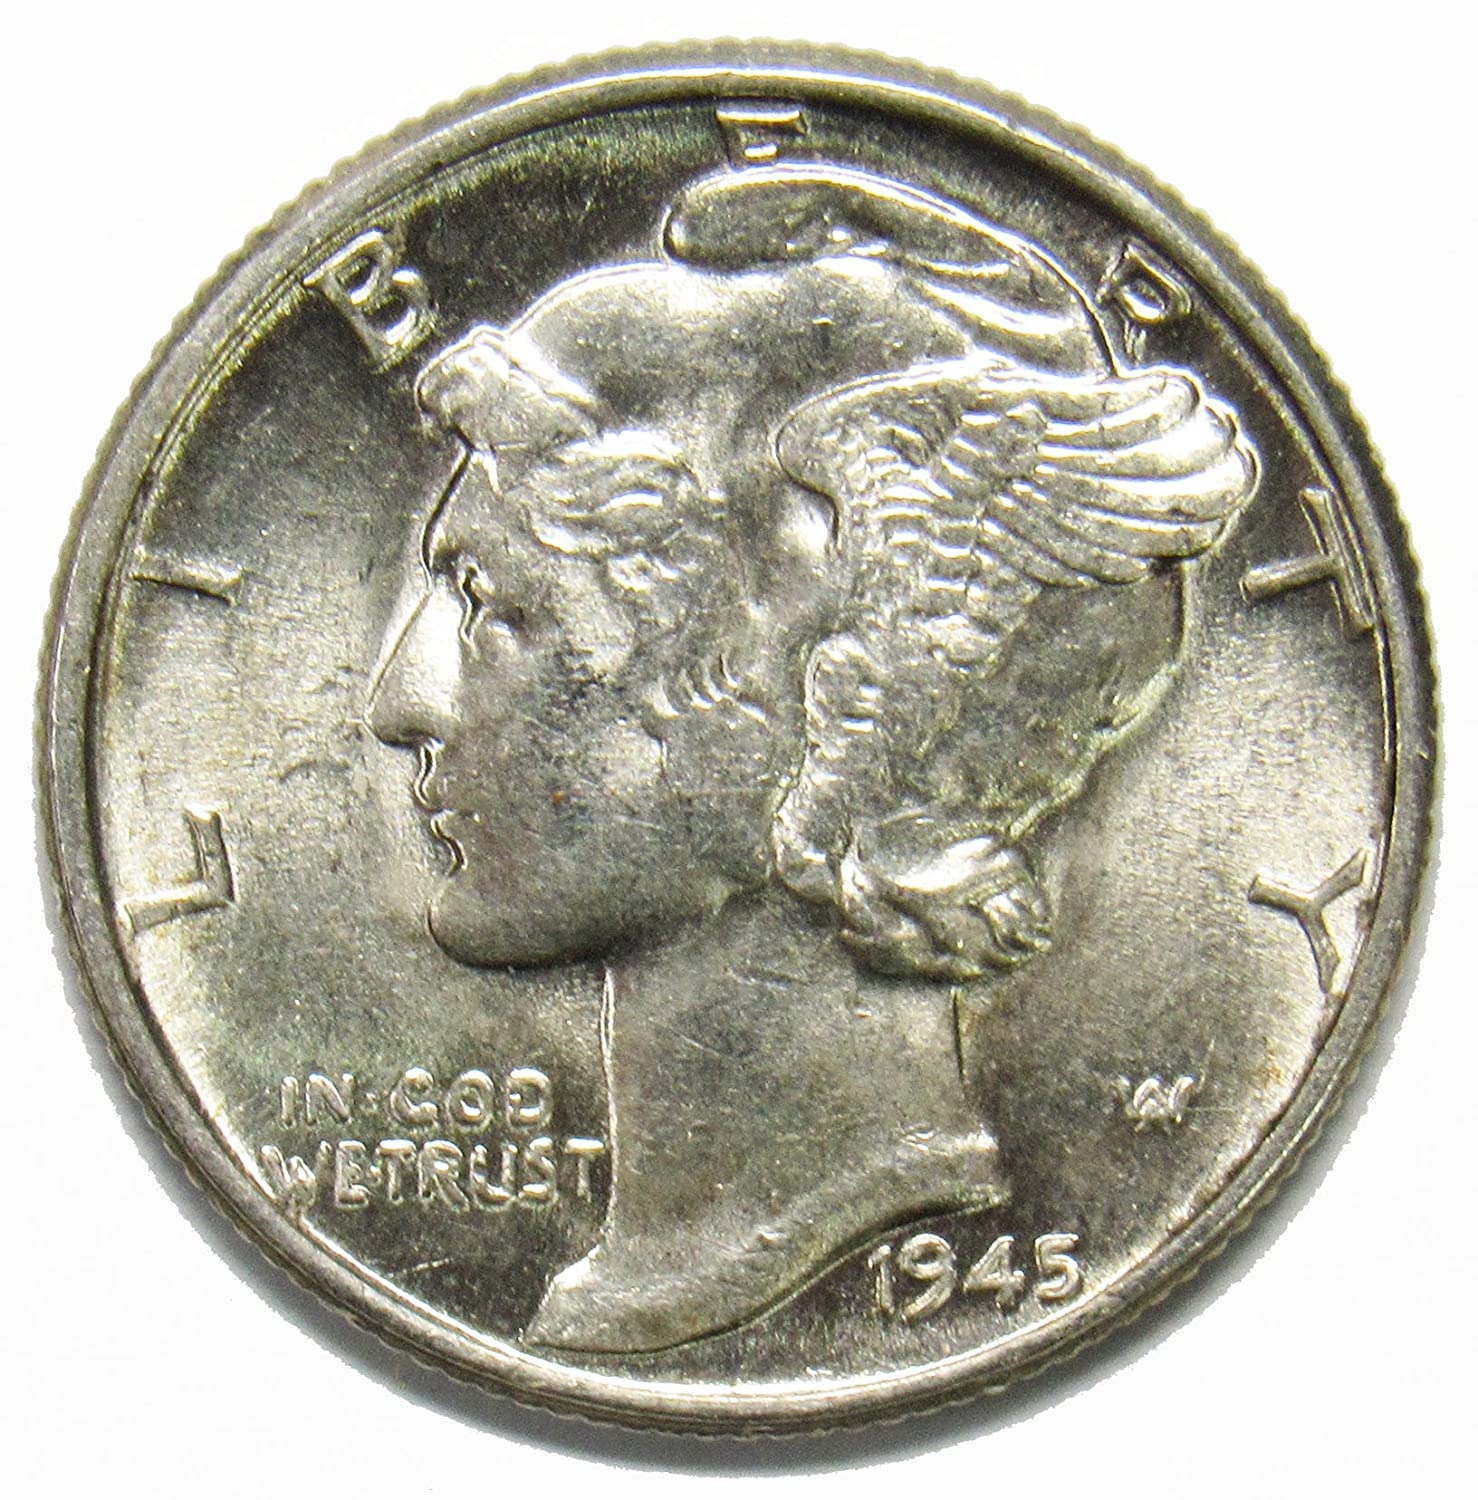 1918-p Mercury Head Dime.Average Grade of Coin You Will Receive is Photographed